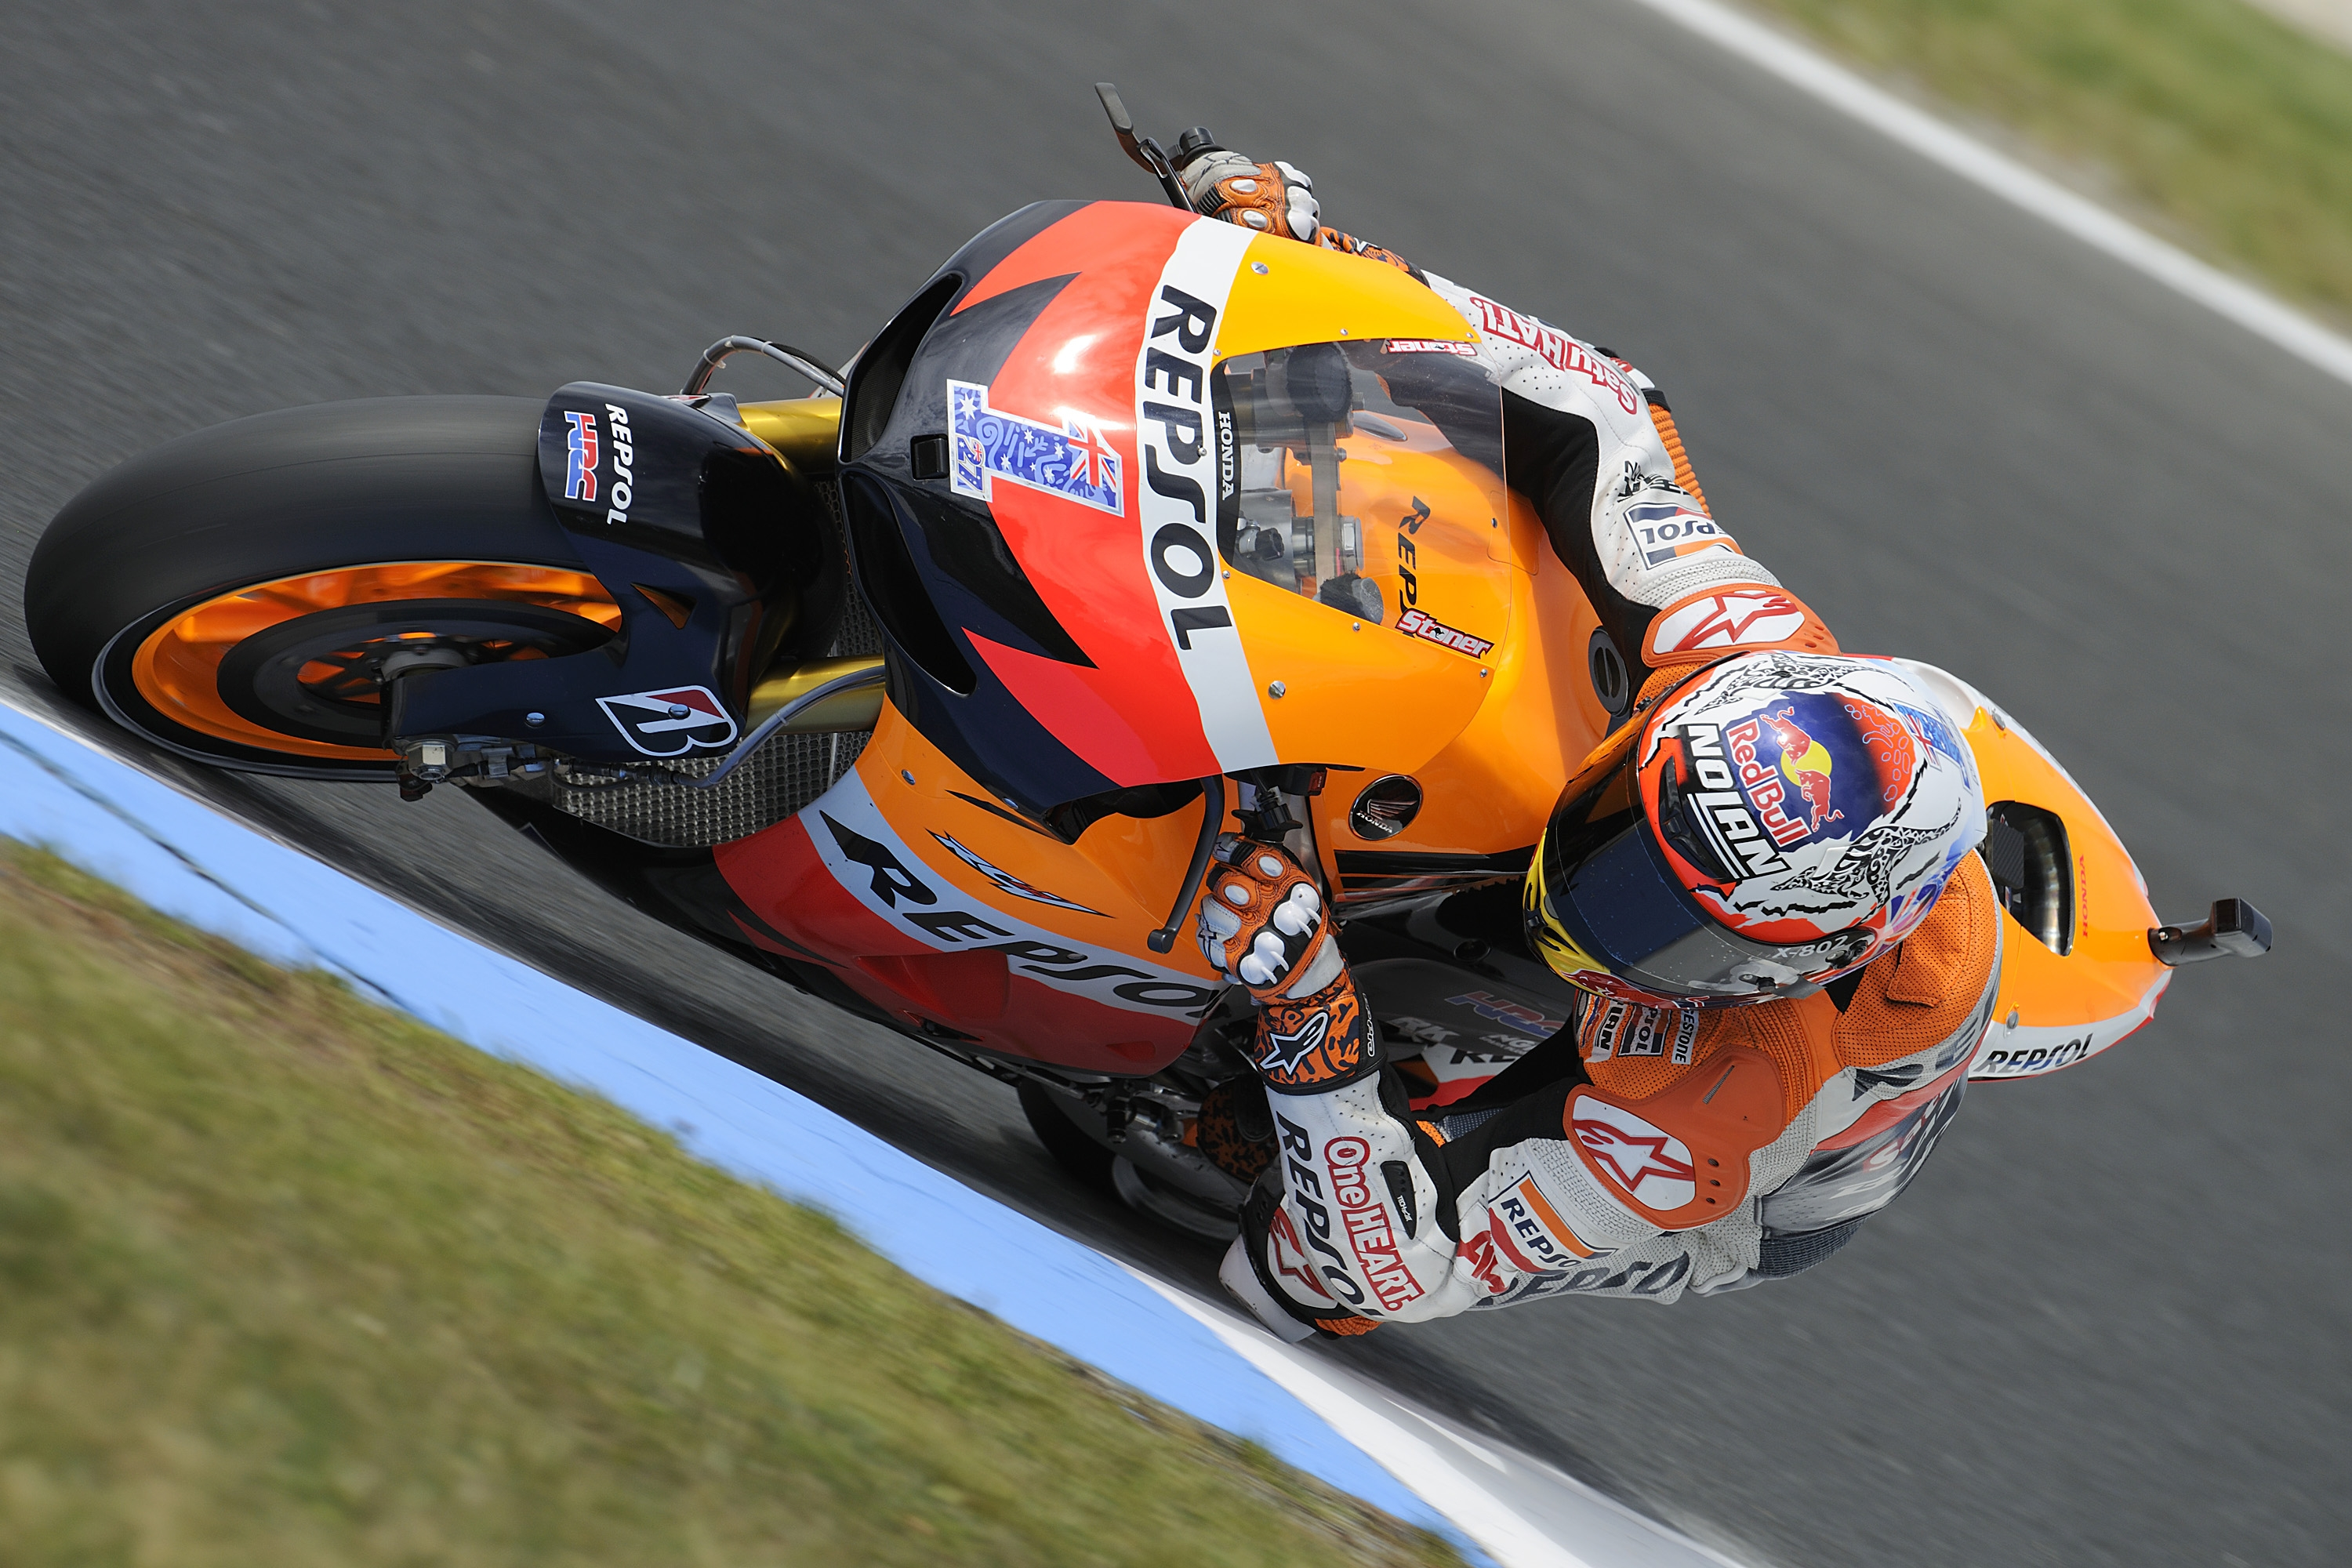 Stoner on record pace on first day at Phillip Island